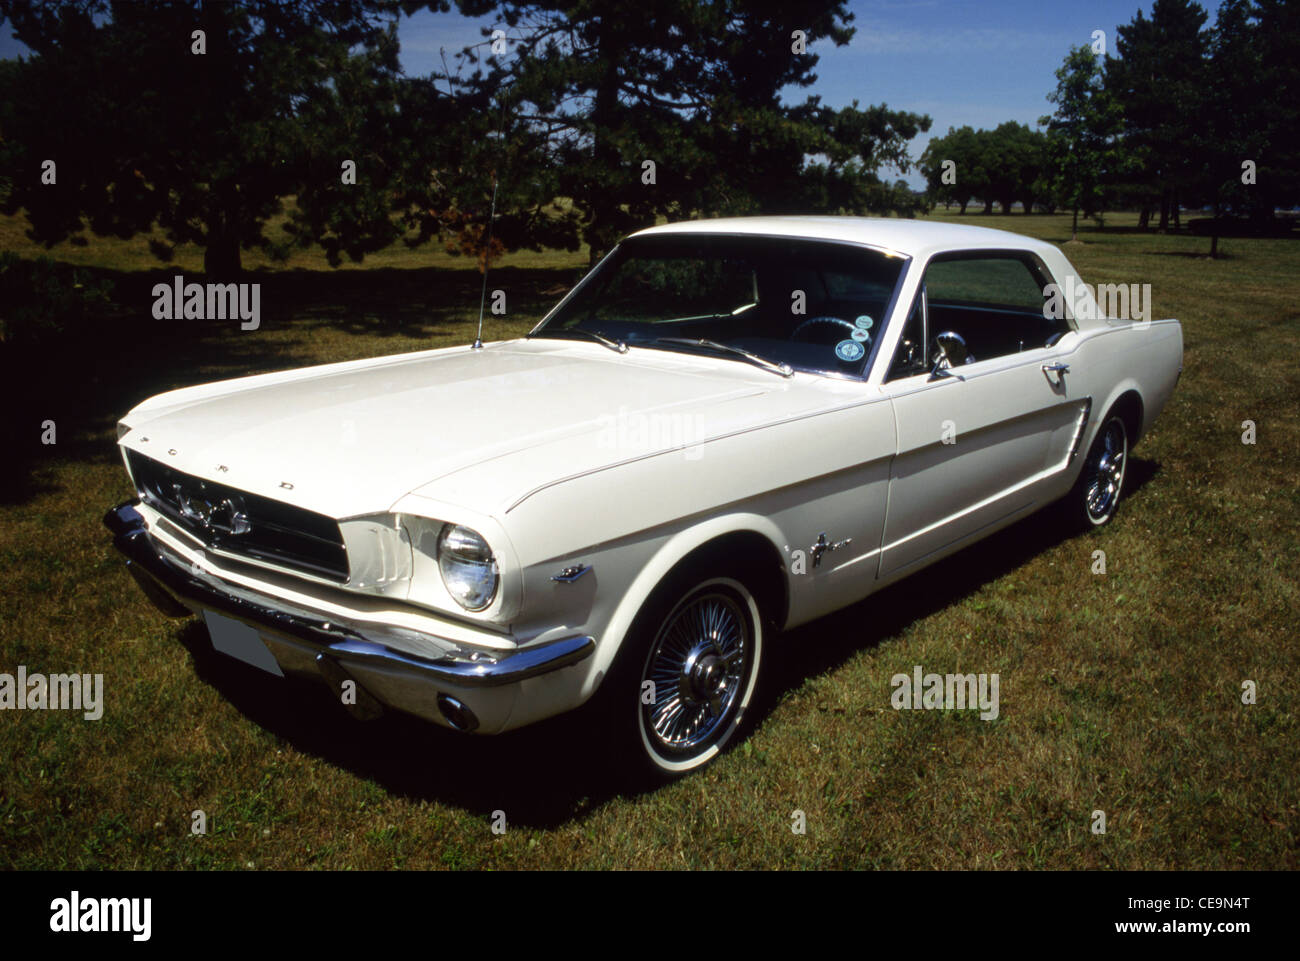 ford mustang 1964 stock photos amp ford mustang 1964 stock